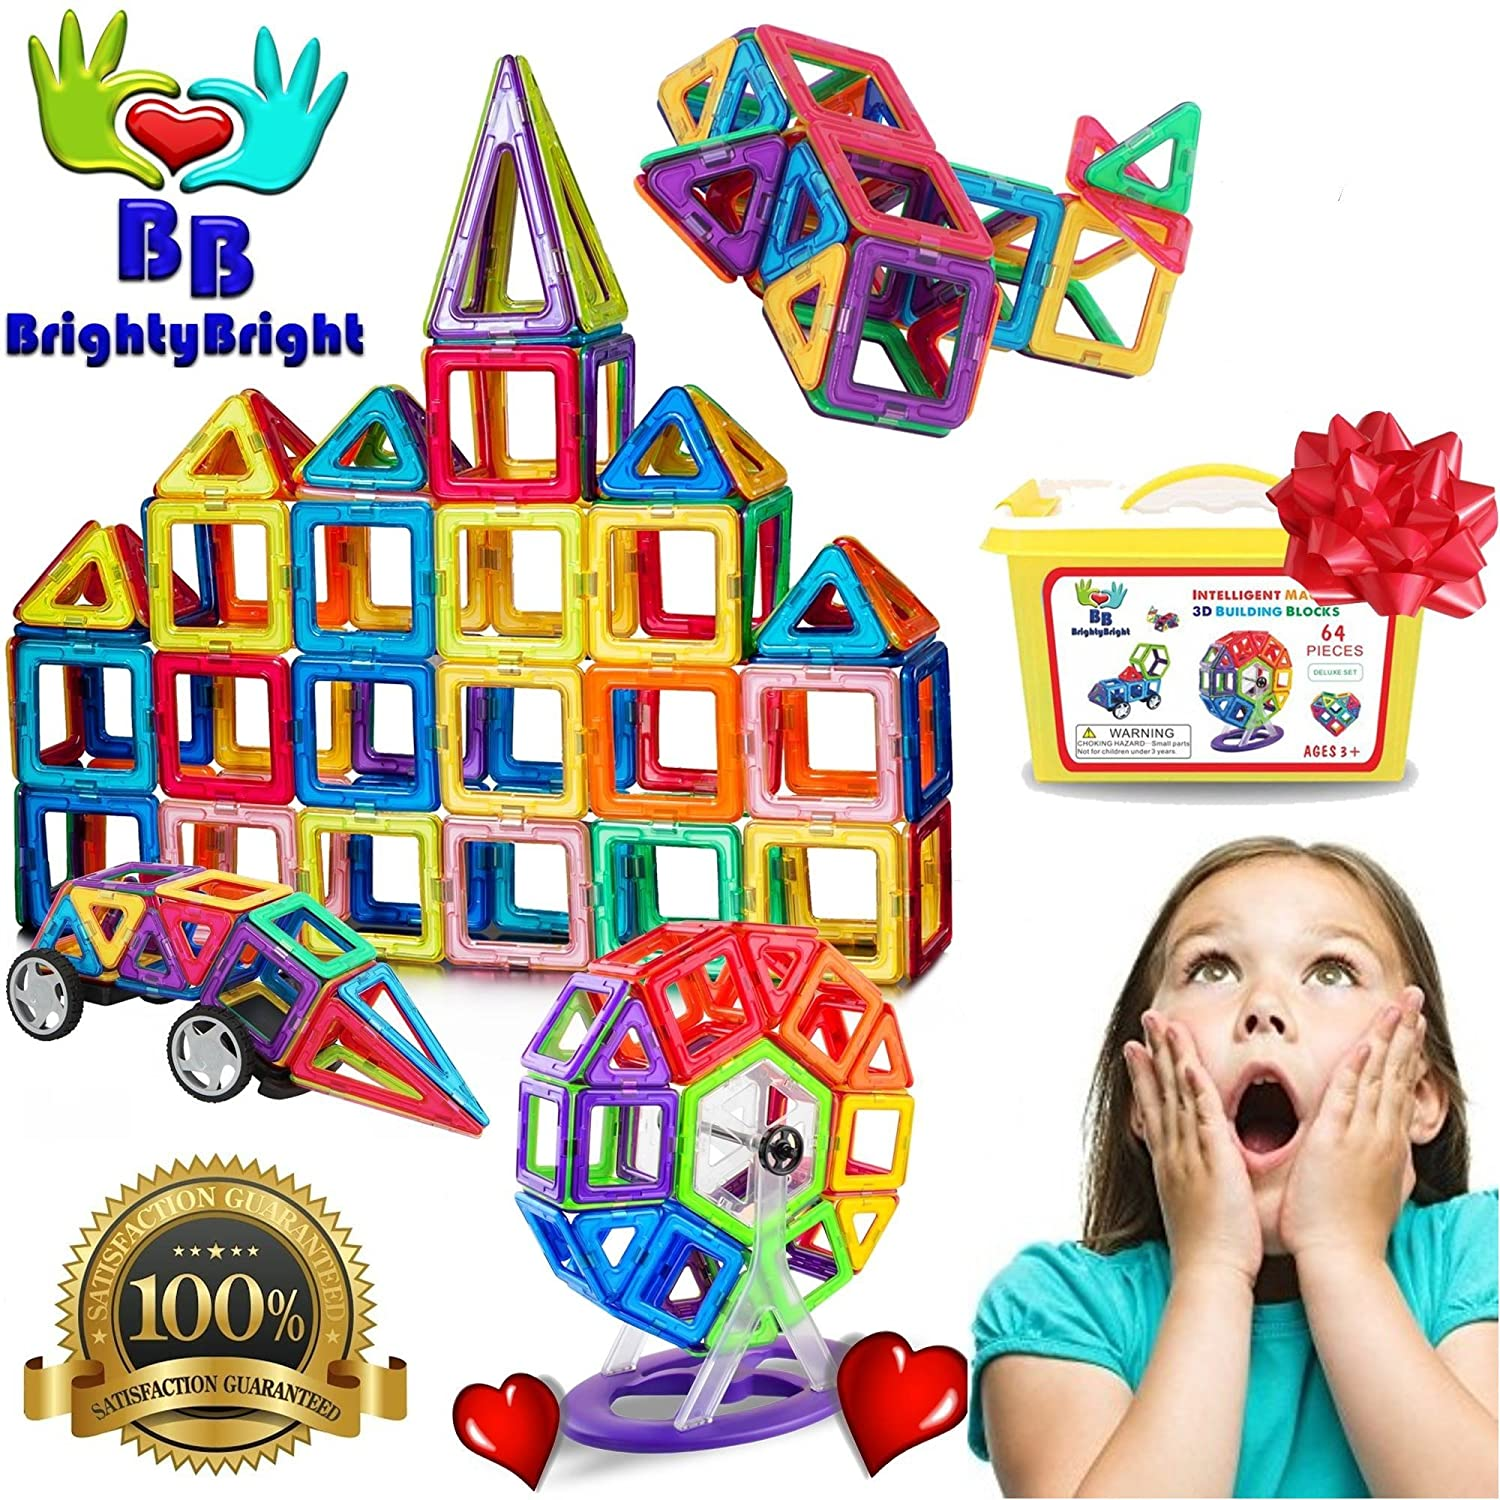 Magnetic Blocks Building Set for Kids - 64 Pc Set Intelligent Magnetic 3D Magnetic Tiles STEM Educational Building Construction Toys for Boys and Girls DELUXE SET with Storage Box Review